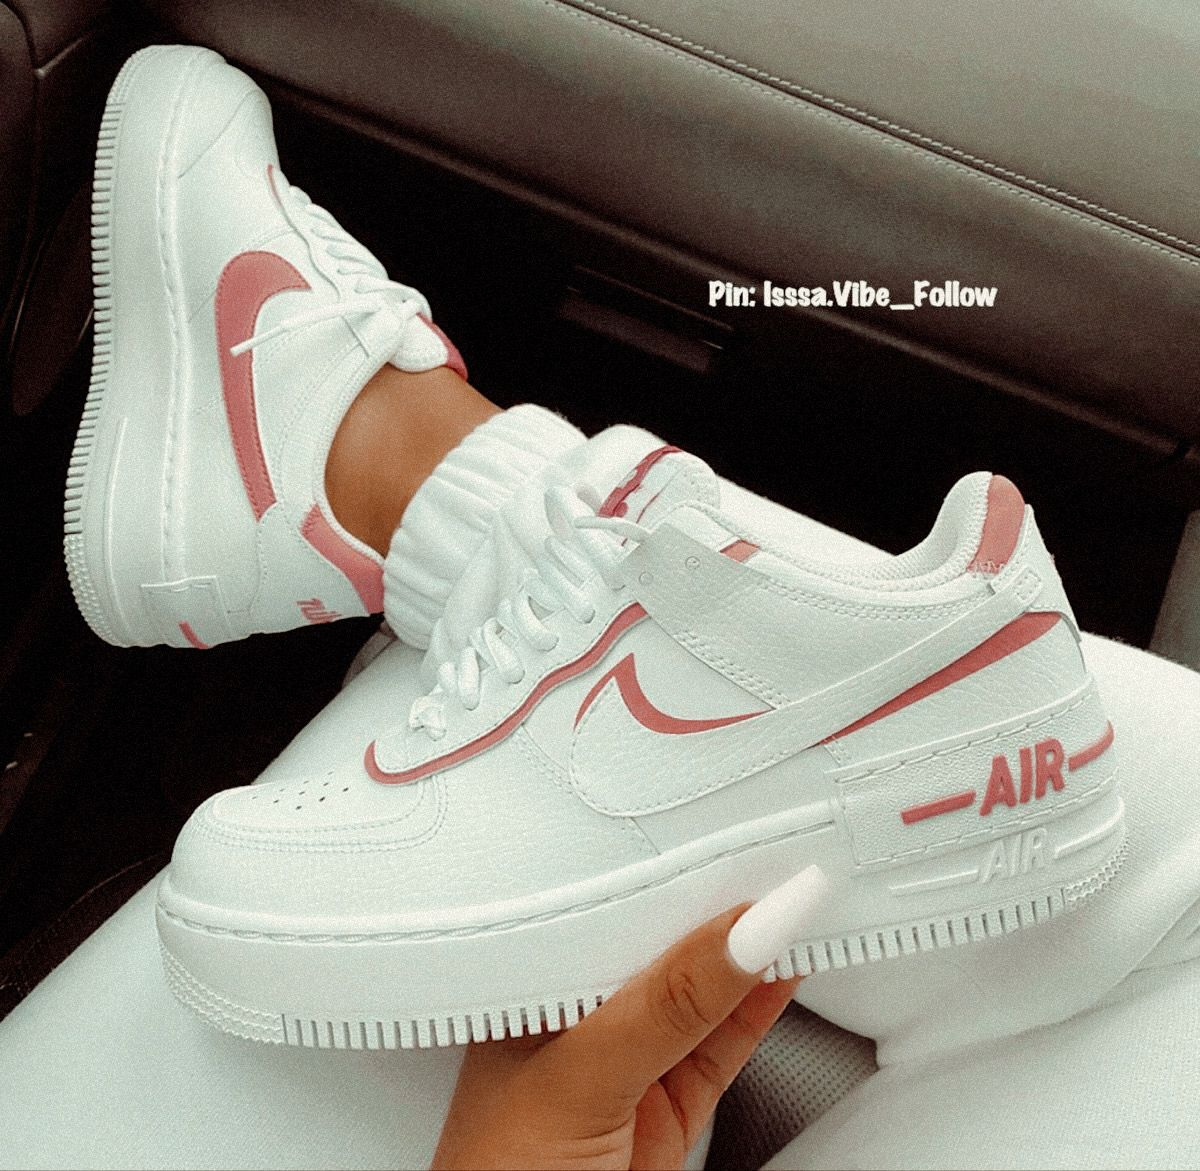 Pin by Ebanny on shoes in 2020 | White nike shoes, Nike air